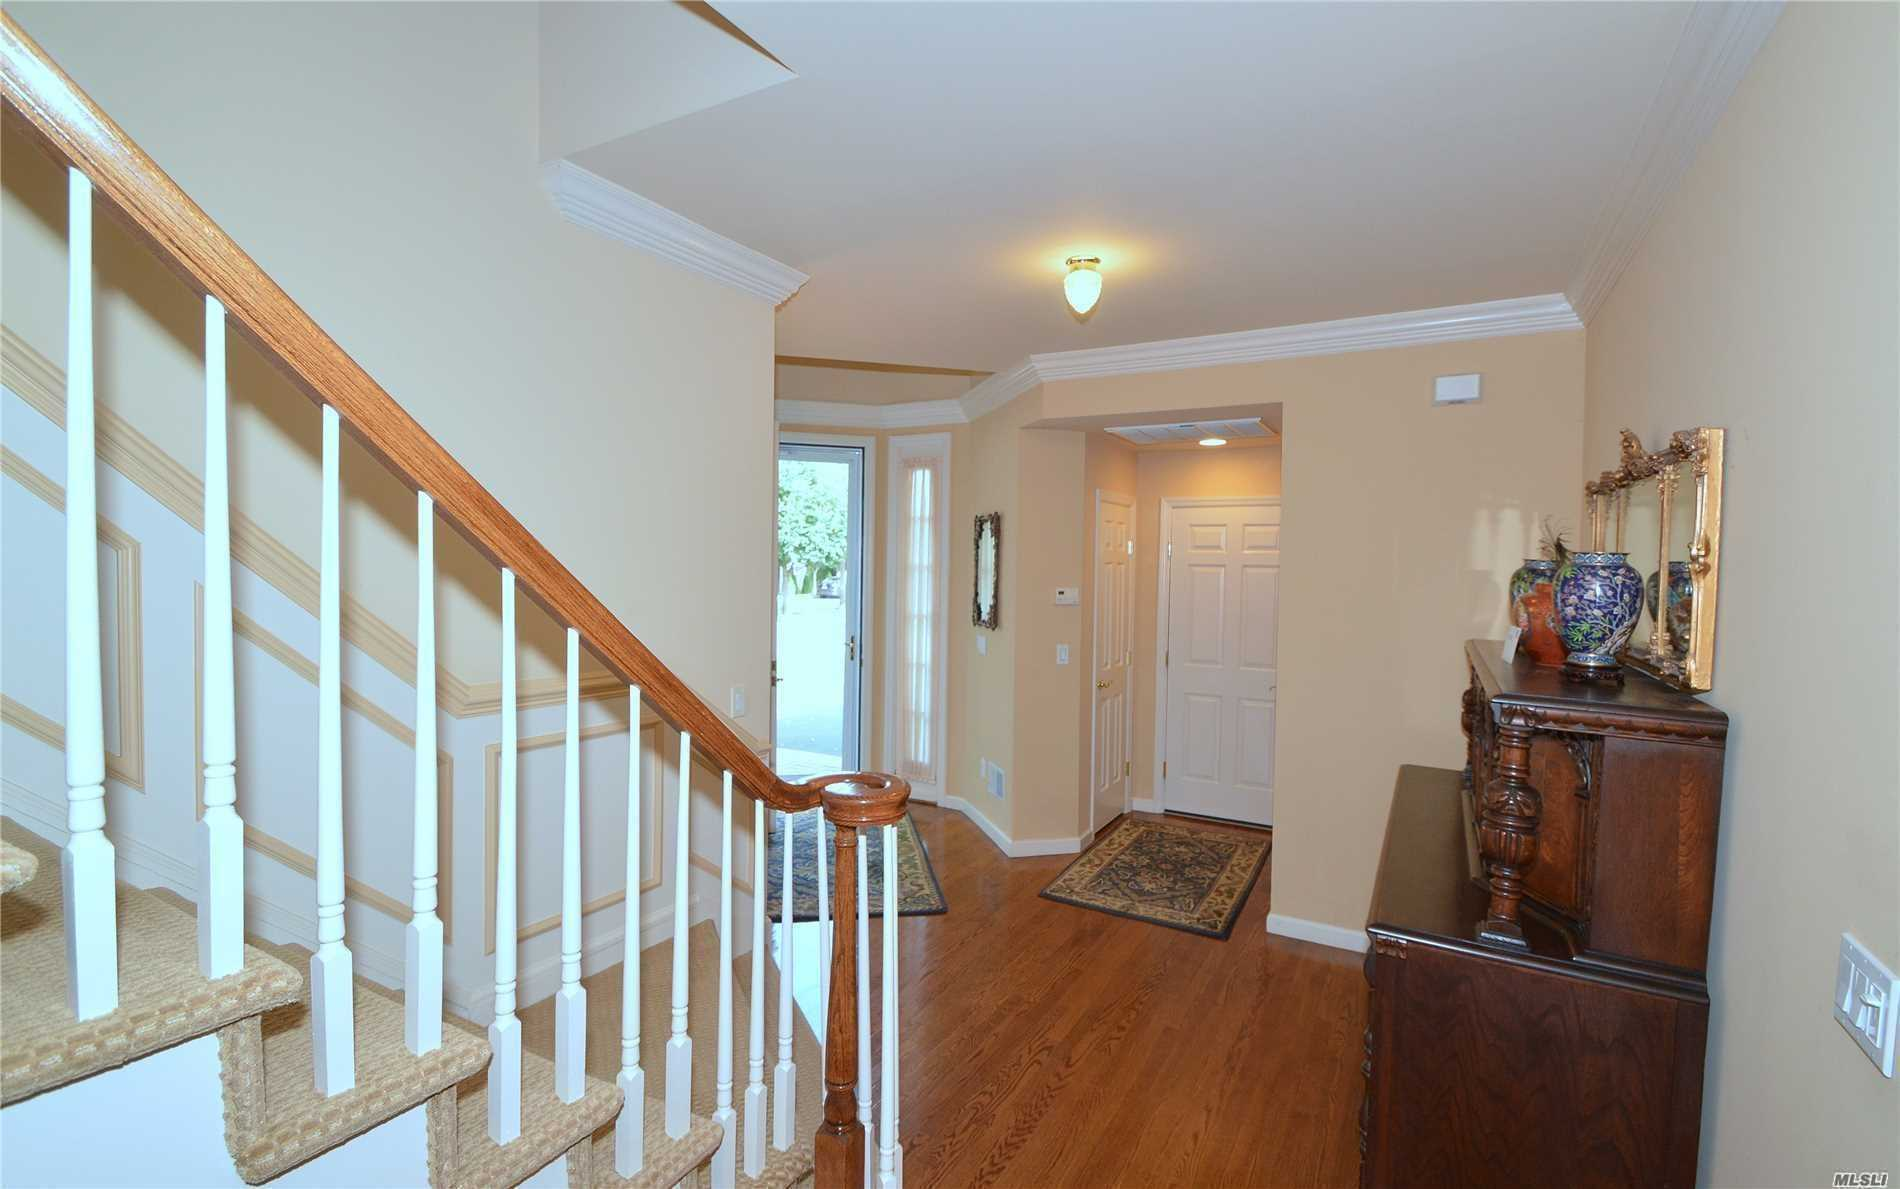 Live The Dream! Desirable Mirasol With Full Basement! Absolutely Beautiful End Unit With Gleaming Hardwood Floors, Custom Granite Kitchen, Detail Moldings Throughout. New A/C Compressor, Electric Awning, Custom Closets, New Hot Water Tank, Low Taxes, In A True Country Club Setting!